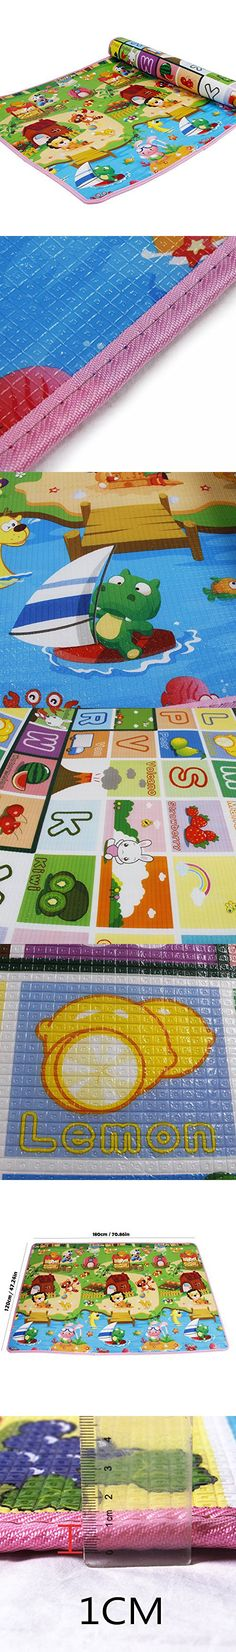 Baby Gyms & Playmats Systematic Cartoon Cotton Children Crawling Mat Sheep Game Mat Round Carpet Childrens Room Decorations